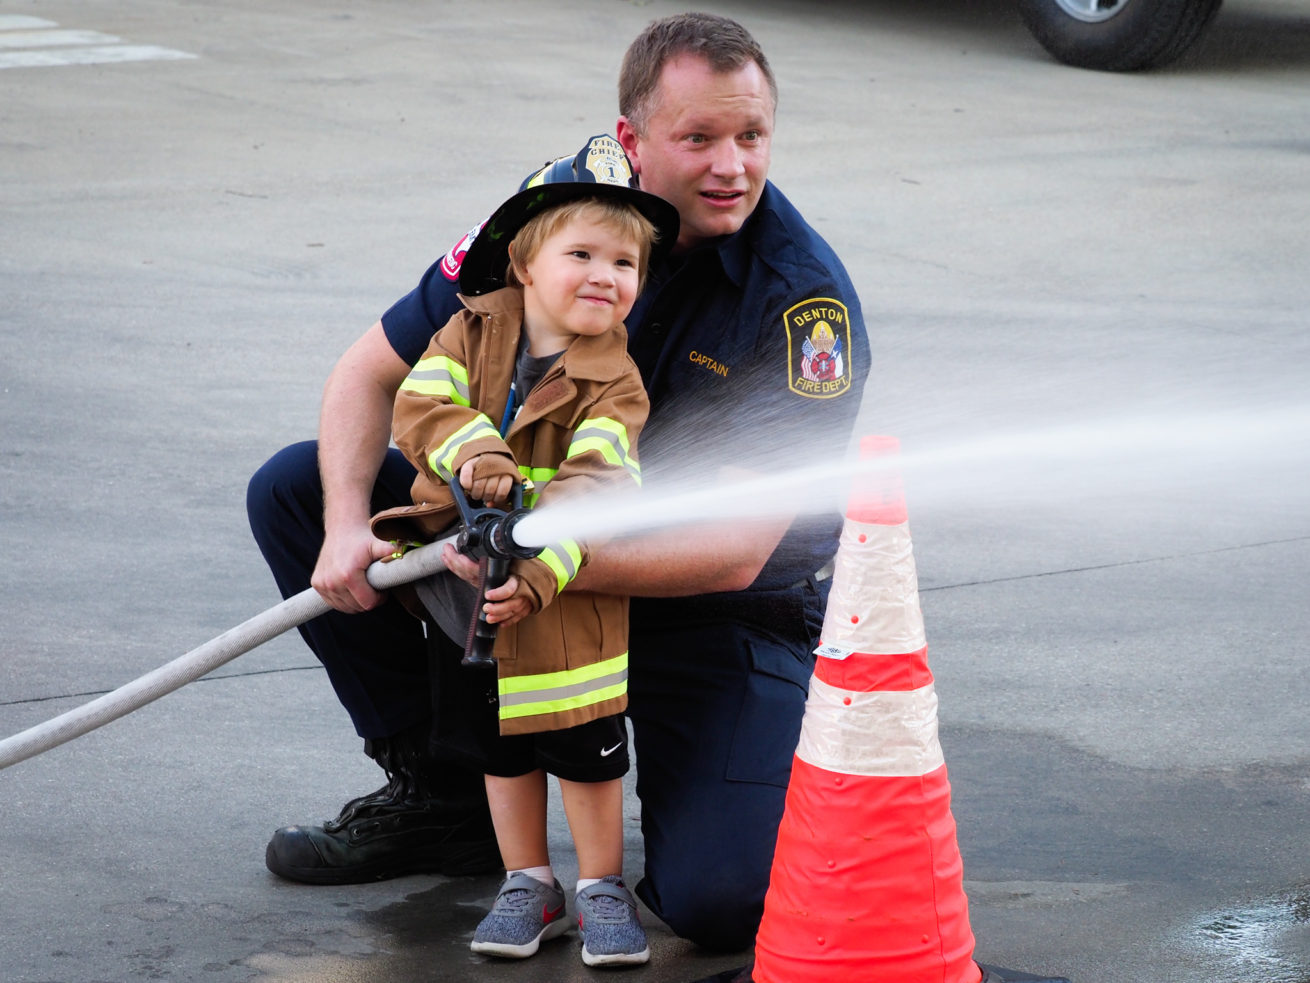 Denton fire training captain, Collin Skipper, teaches 3-year-old, Riley Platt, how to use a fire hose during the annual Public Safety Day event at Central Fire Station.  The Denton Fire Department and Denton Police Department hosted a dedication to the 9/